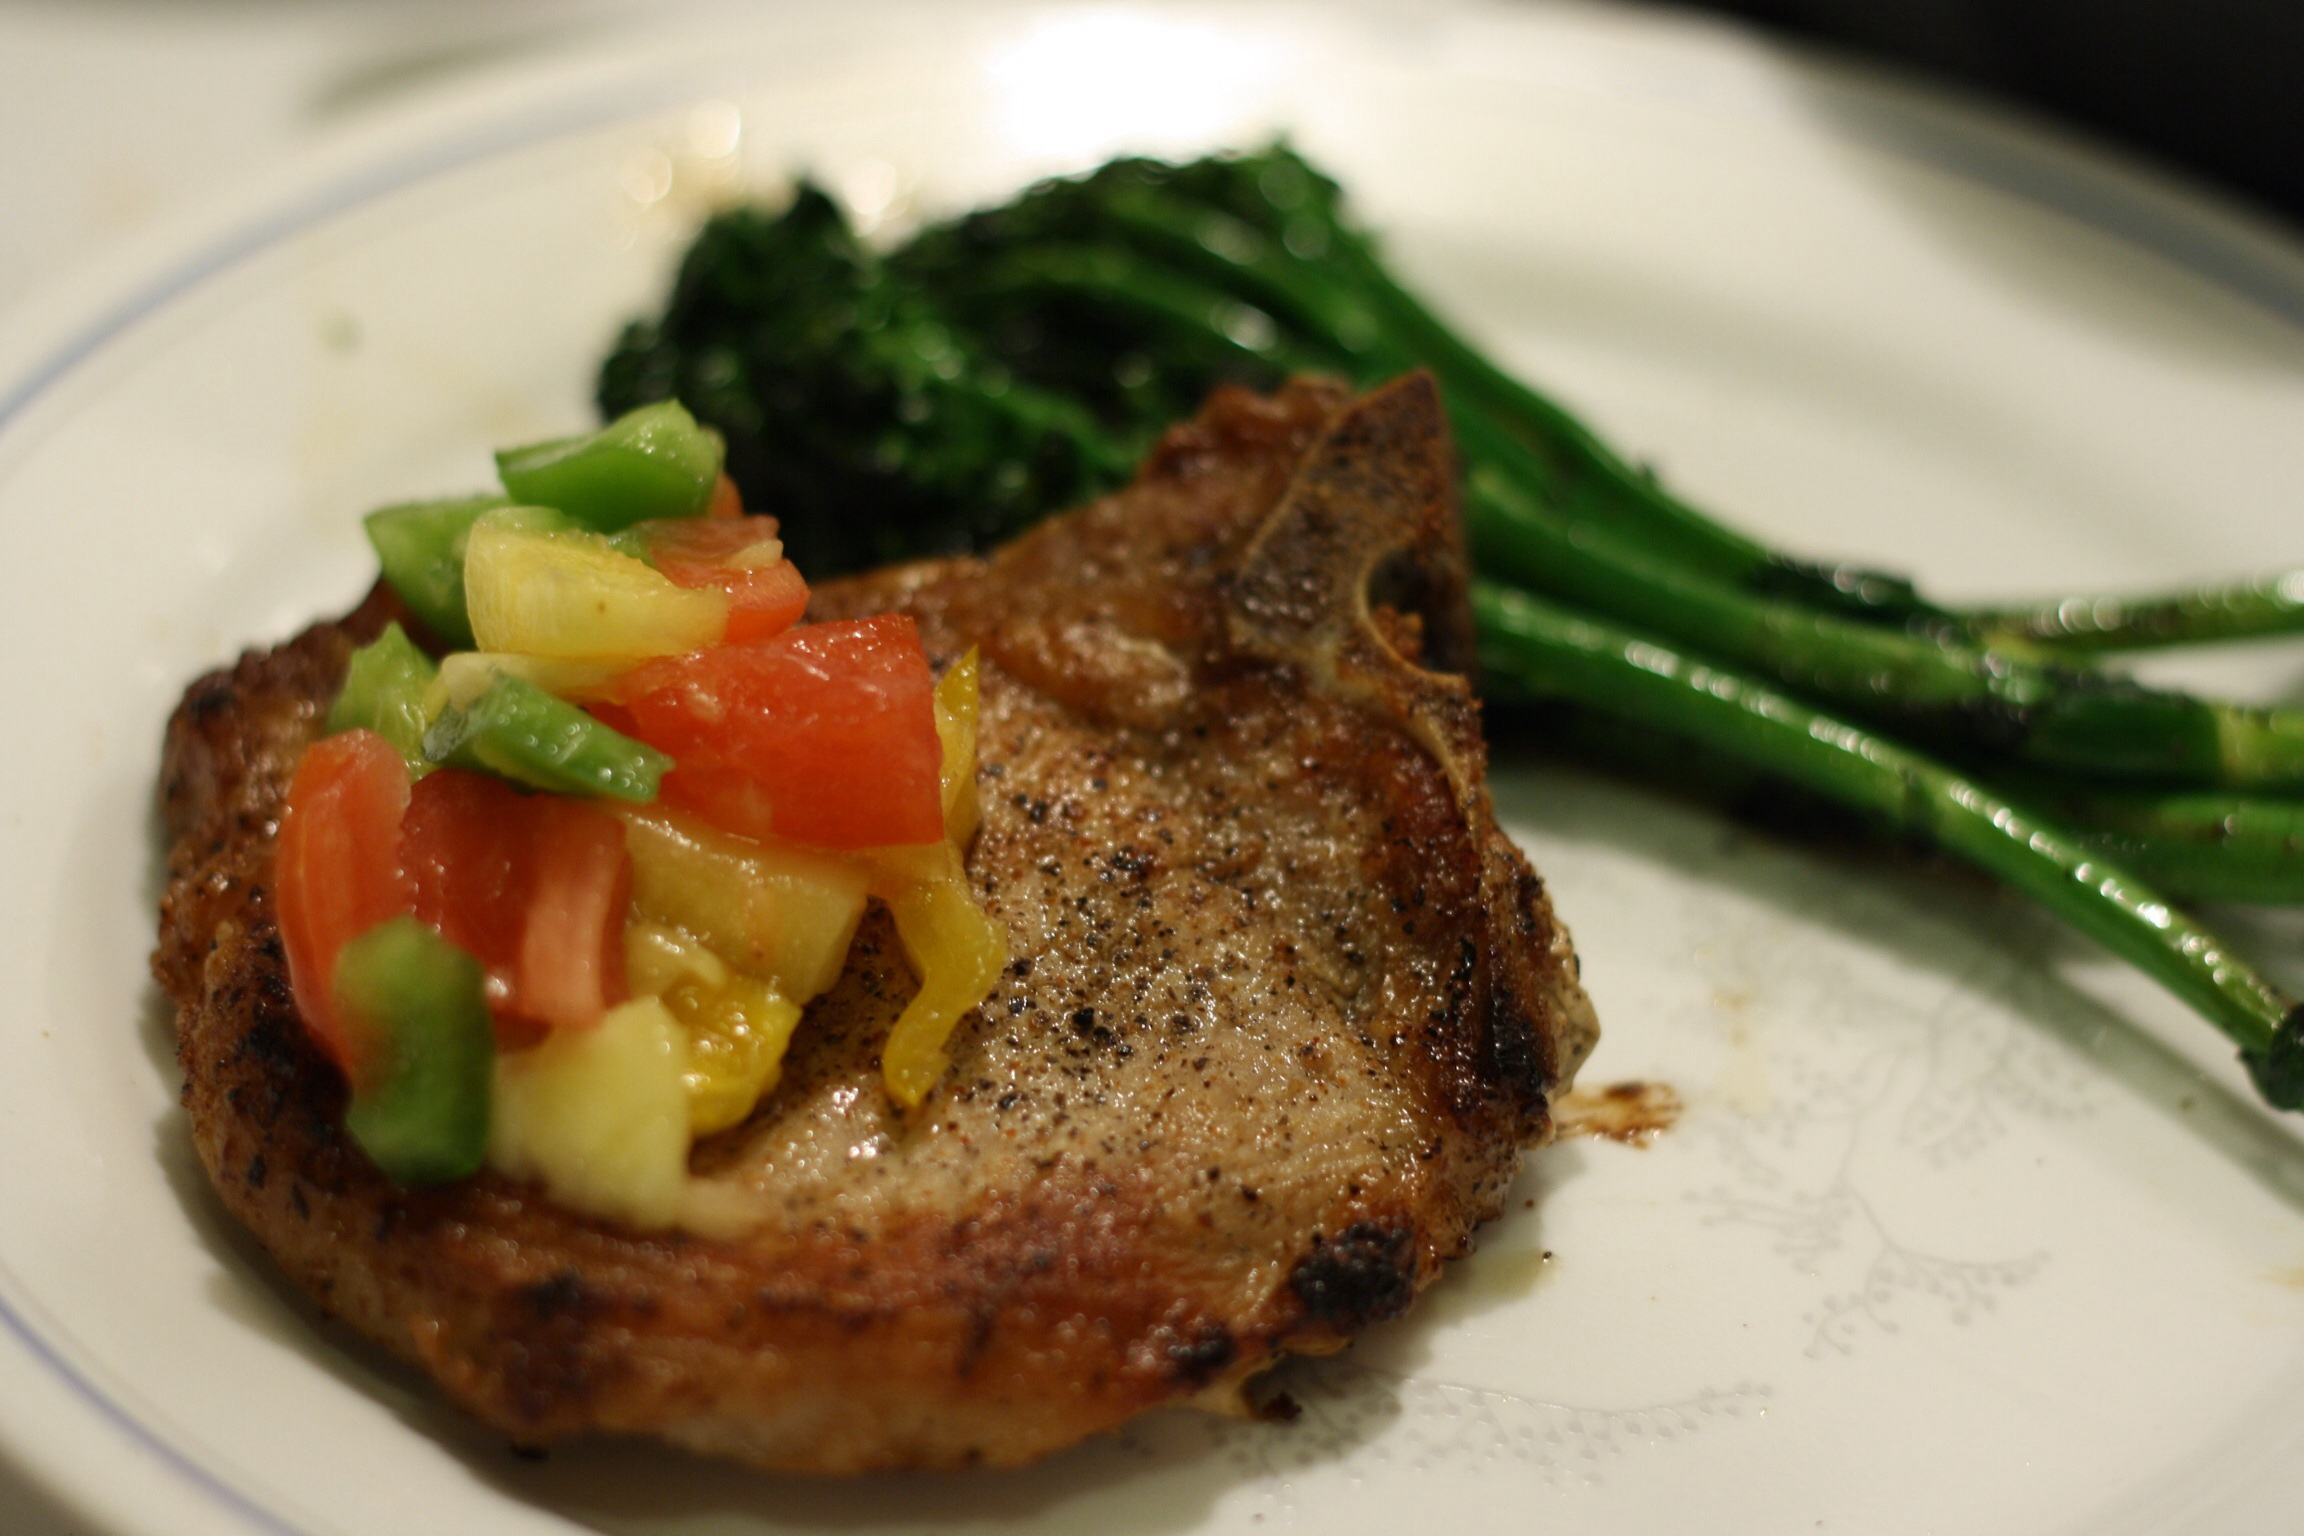 Pan-Grilled Pork Chops with Pineapple Salsa